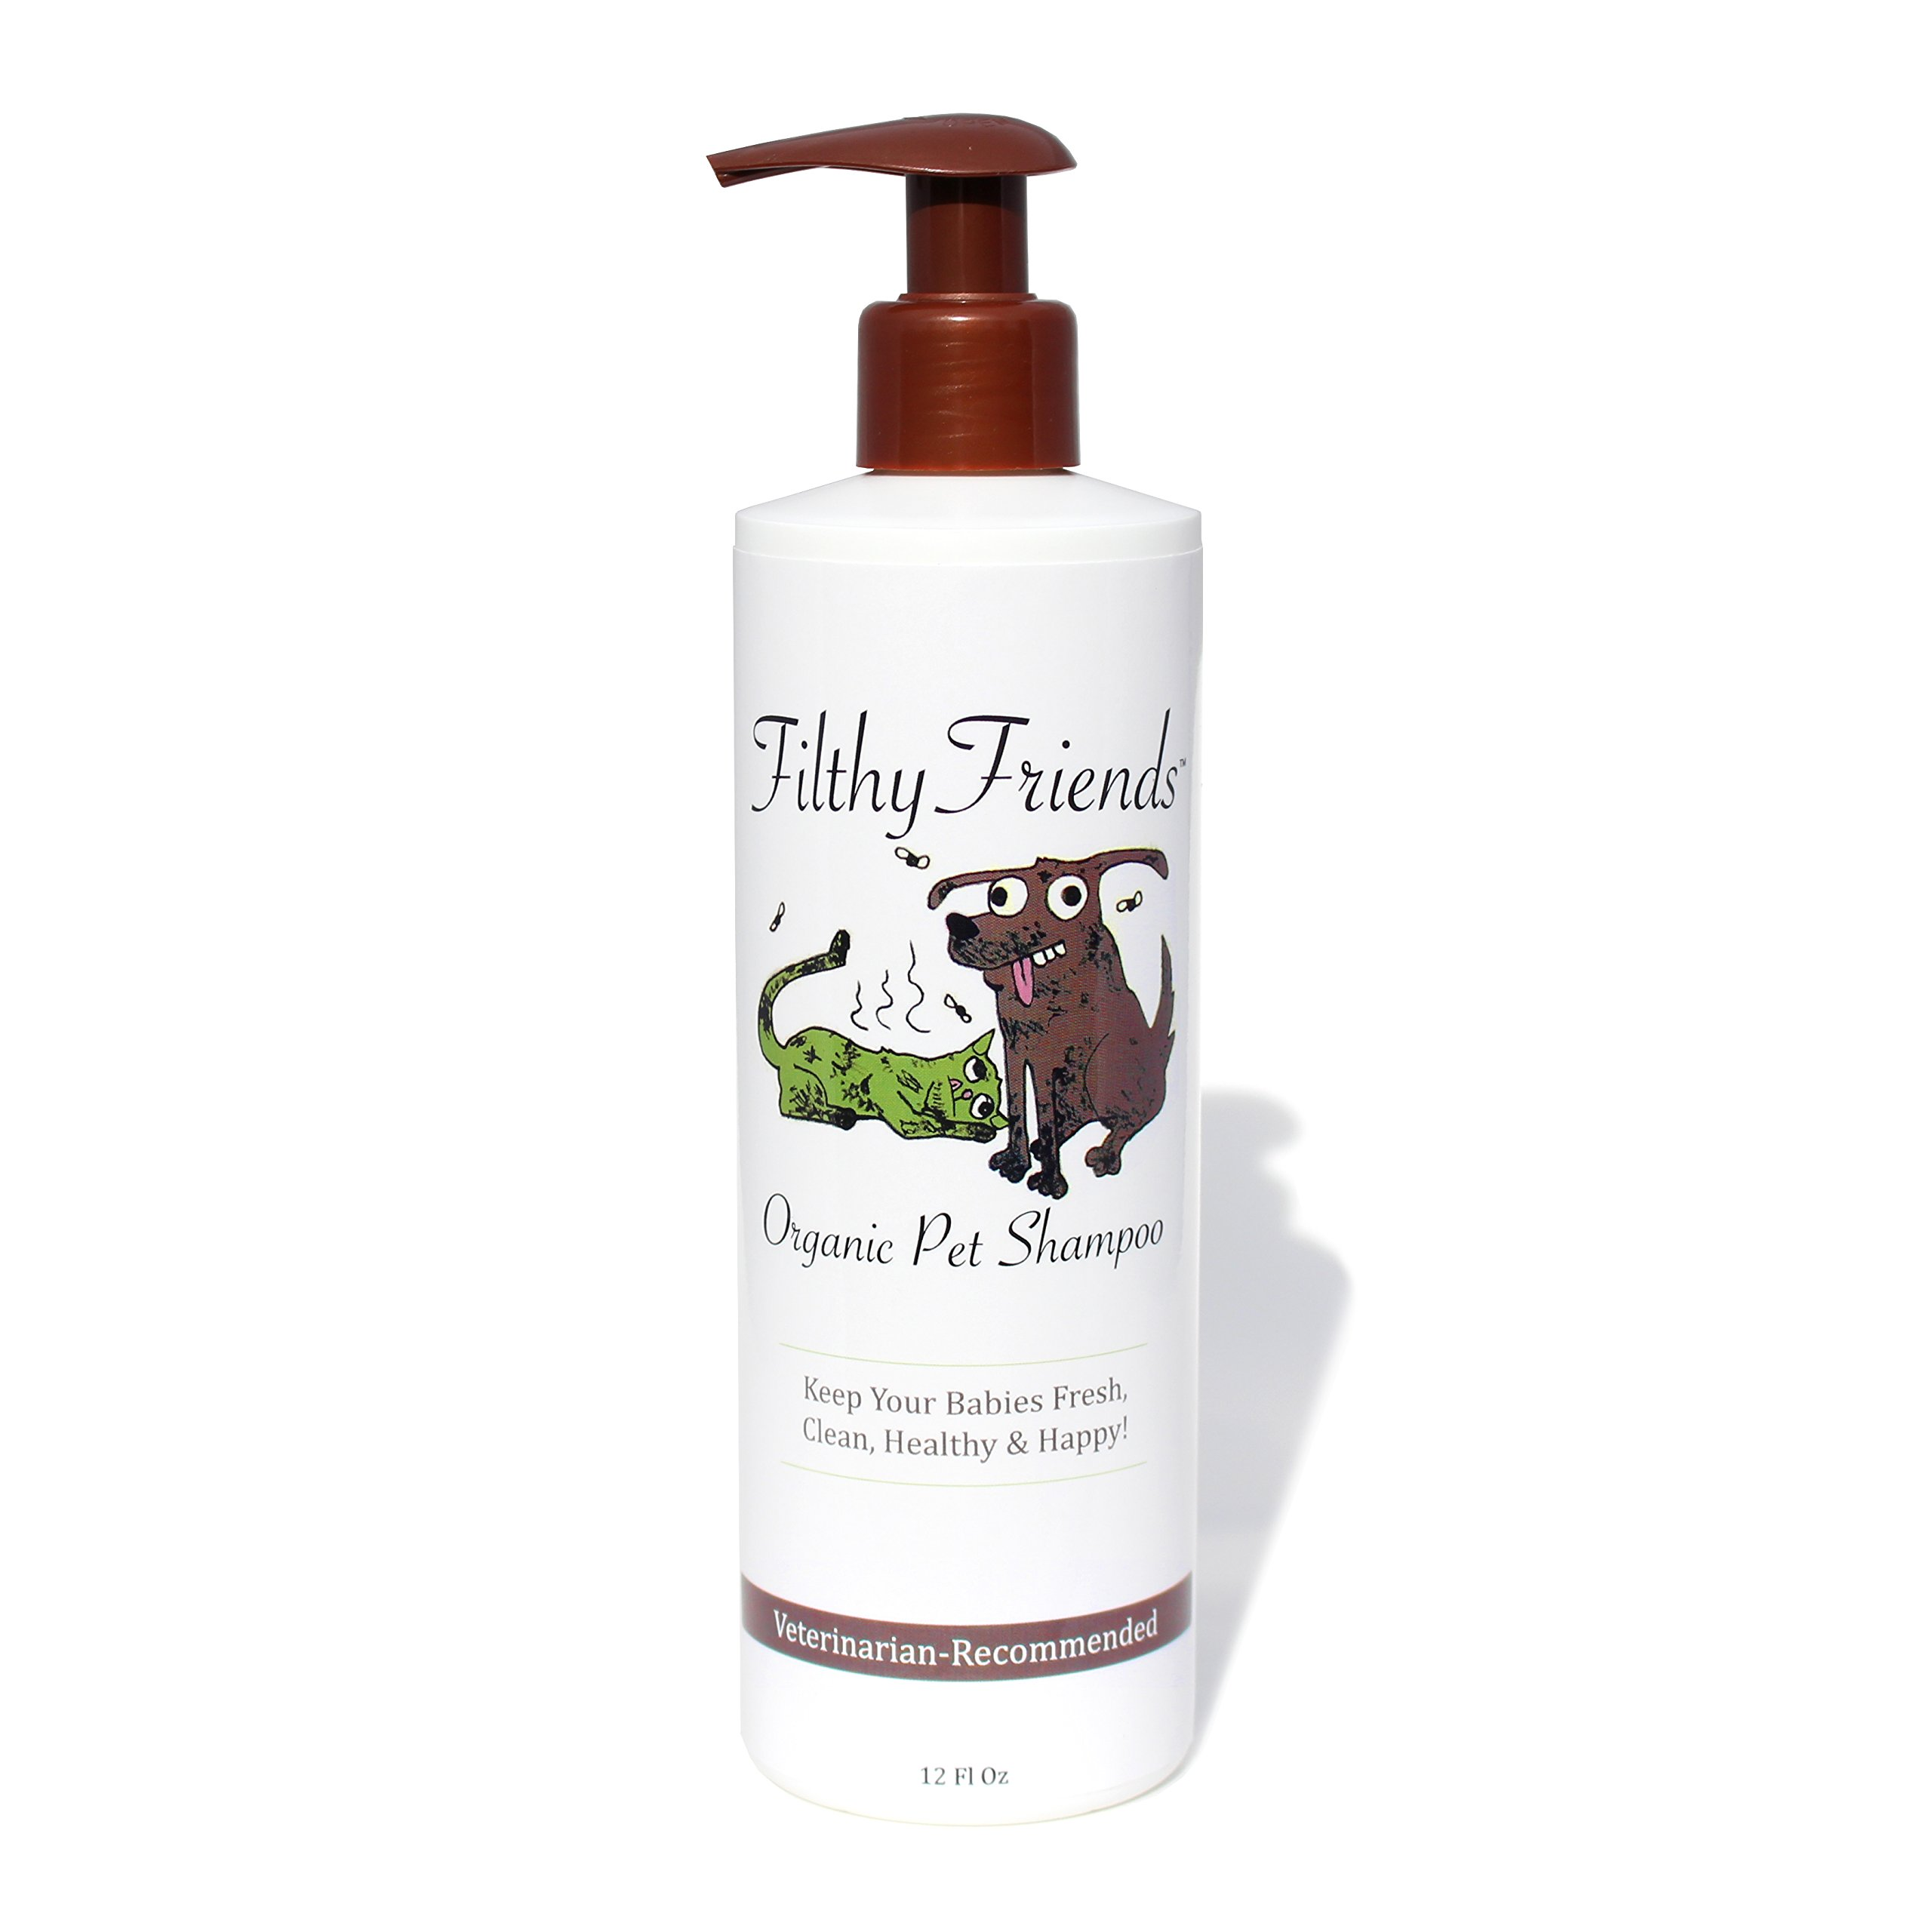 Pet Shampoo - Easily Removes Odors, Dirt & Itchy Dander